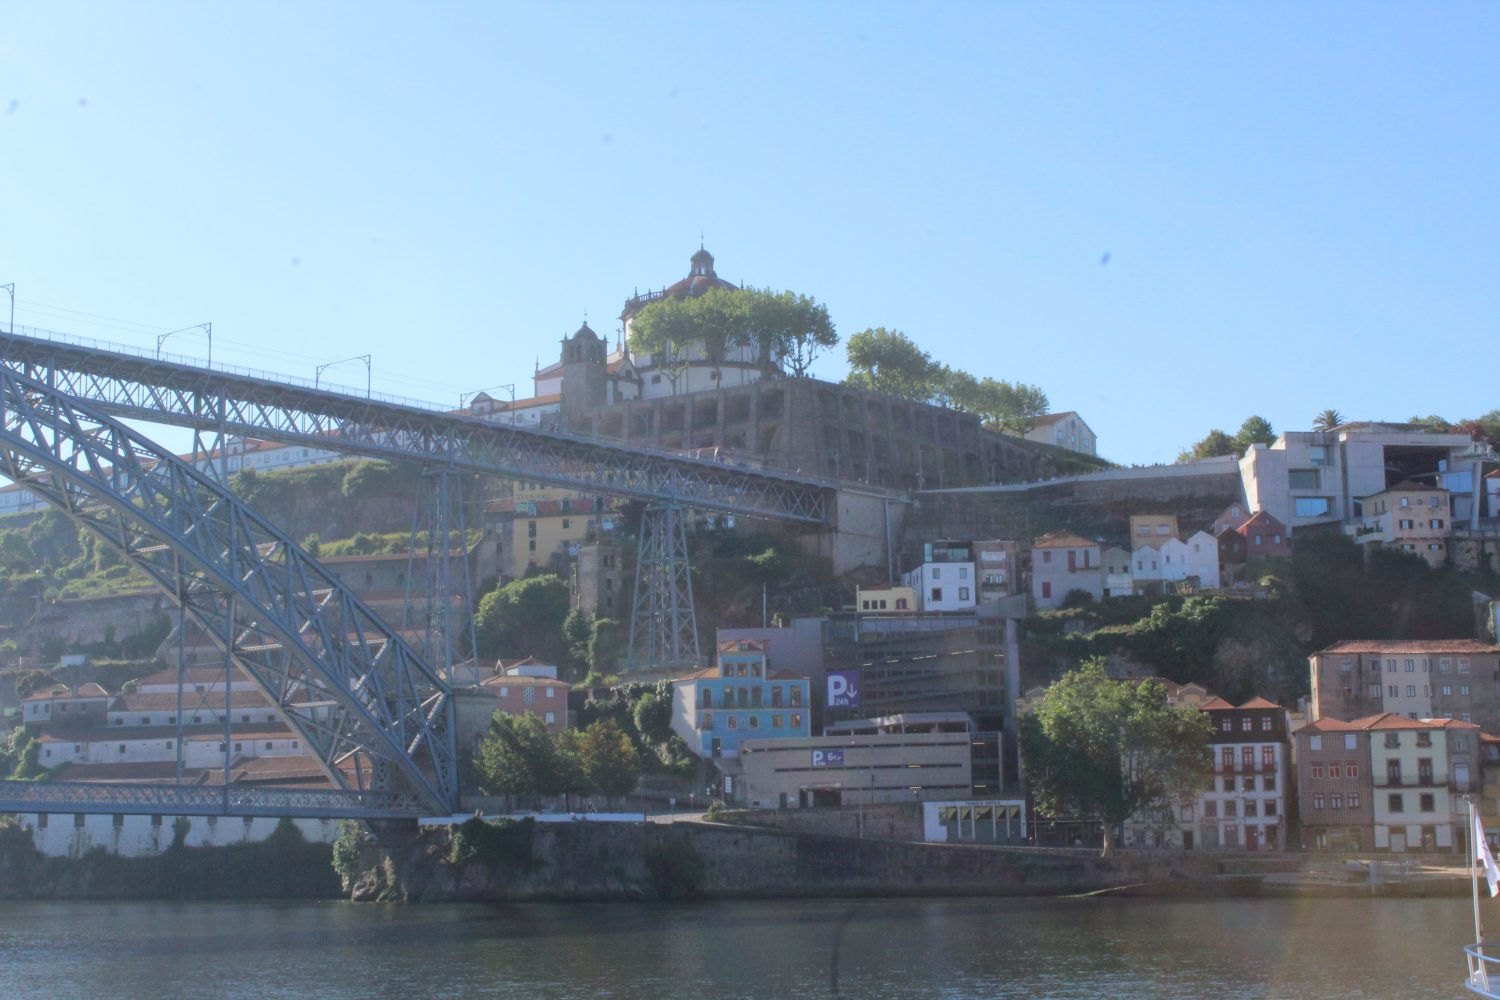 Luís I bridge and Serra do Pilar monastery